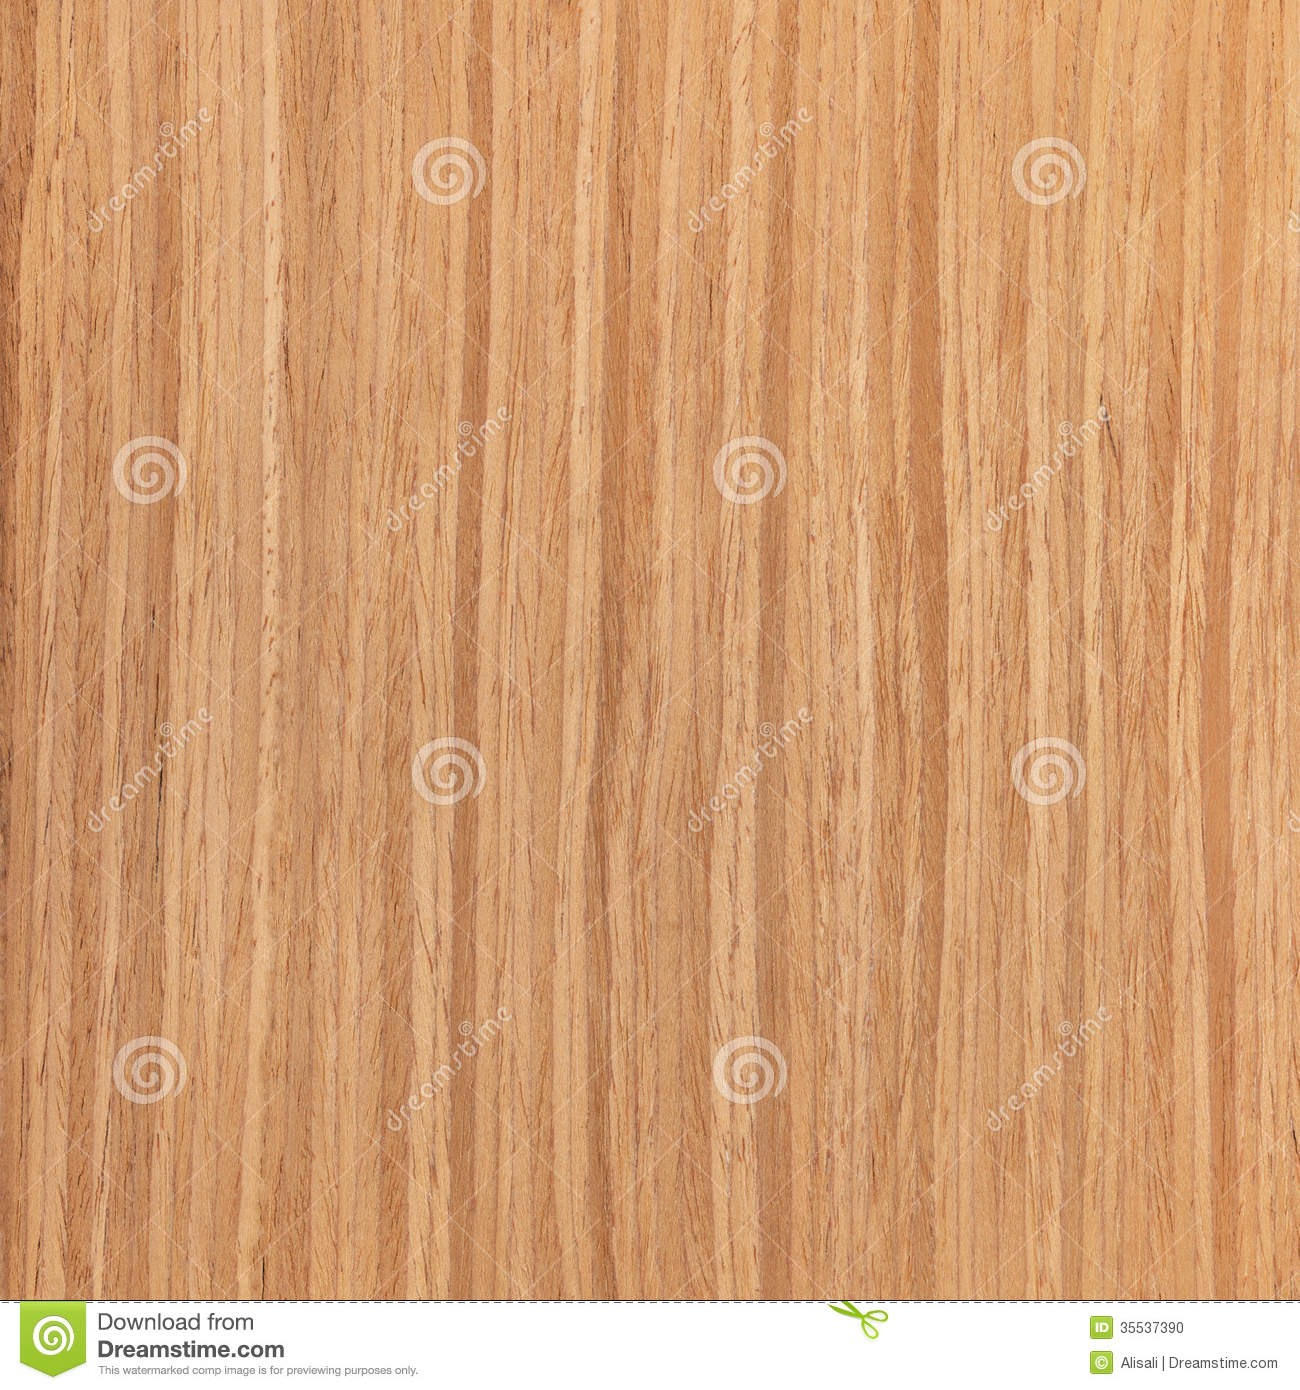 Oak Wood Grain Oak wooden texture, wood grain